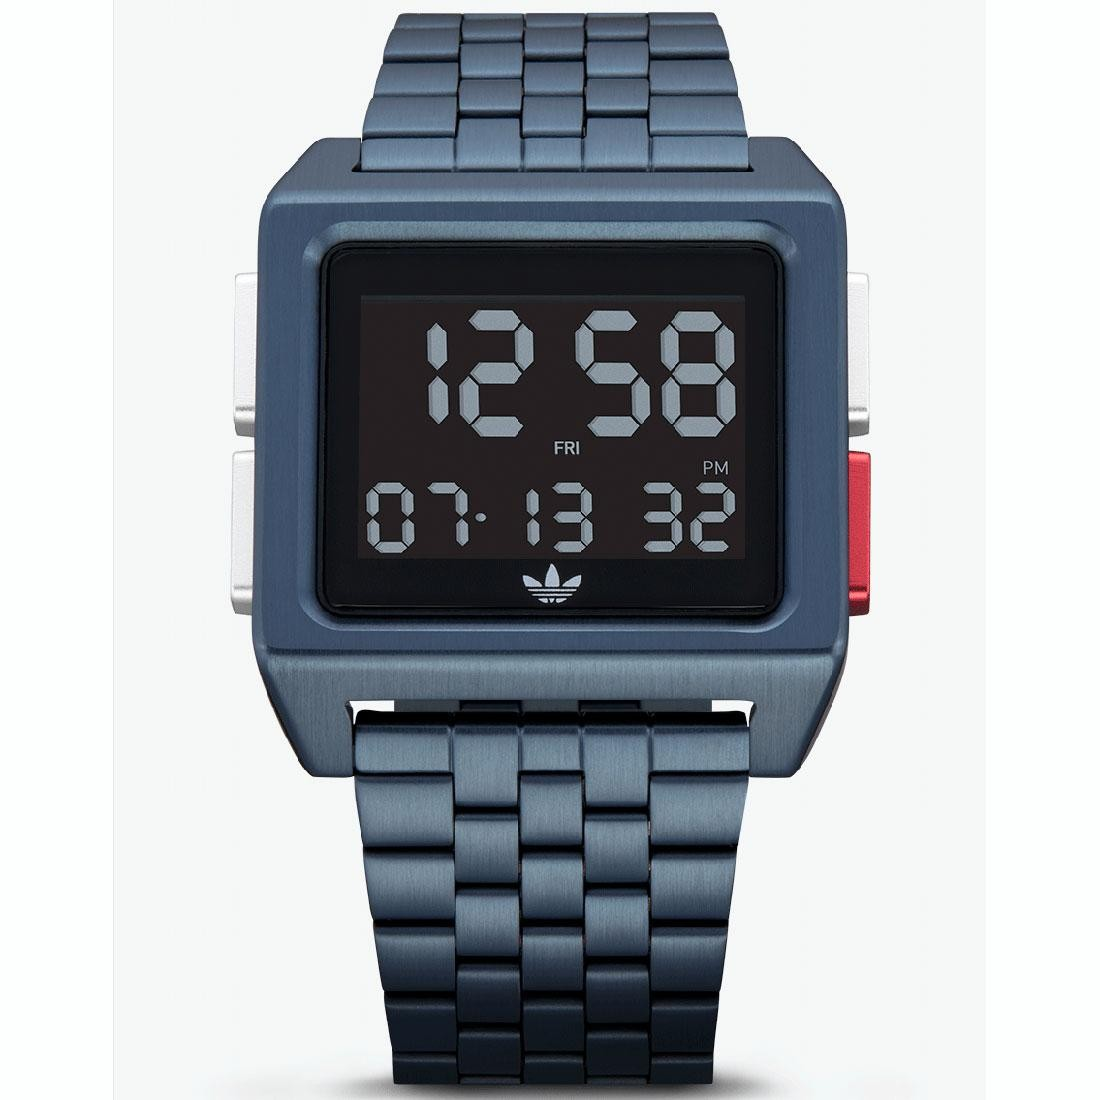 Adidas ARCHIVE_M1 Z01-3041-00 Watch (navy / black / silver / red)